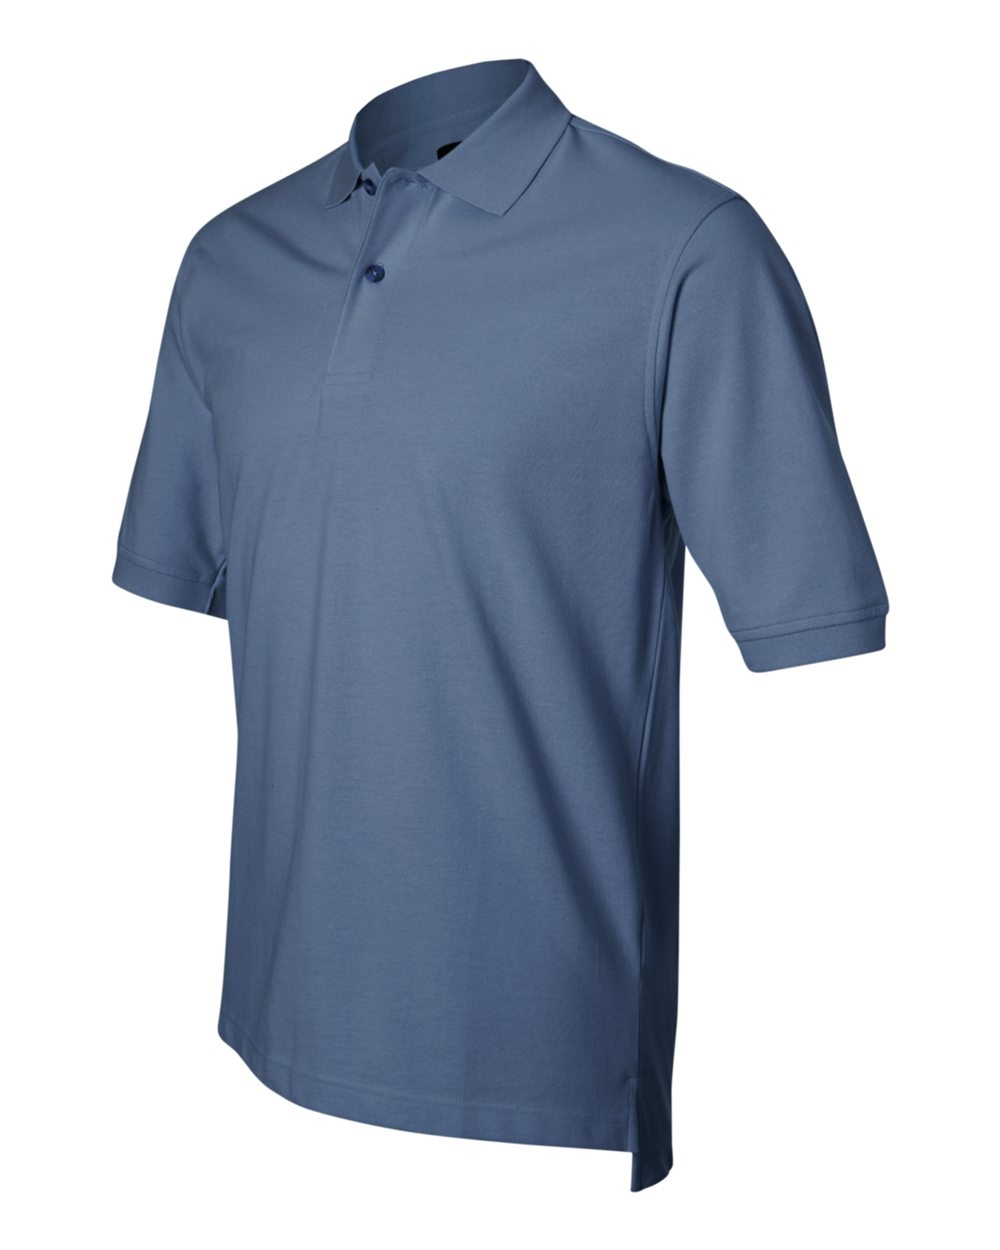 ddffb8bc727 Izod 13Z0012 Mens Original Silk-Wash Pique Polo Shirts